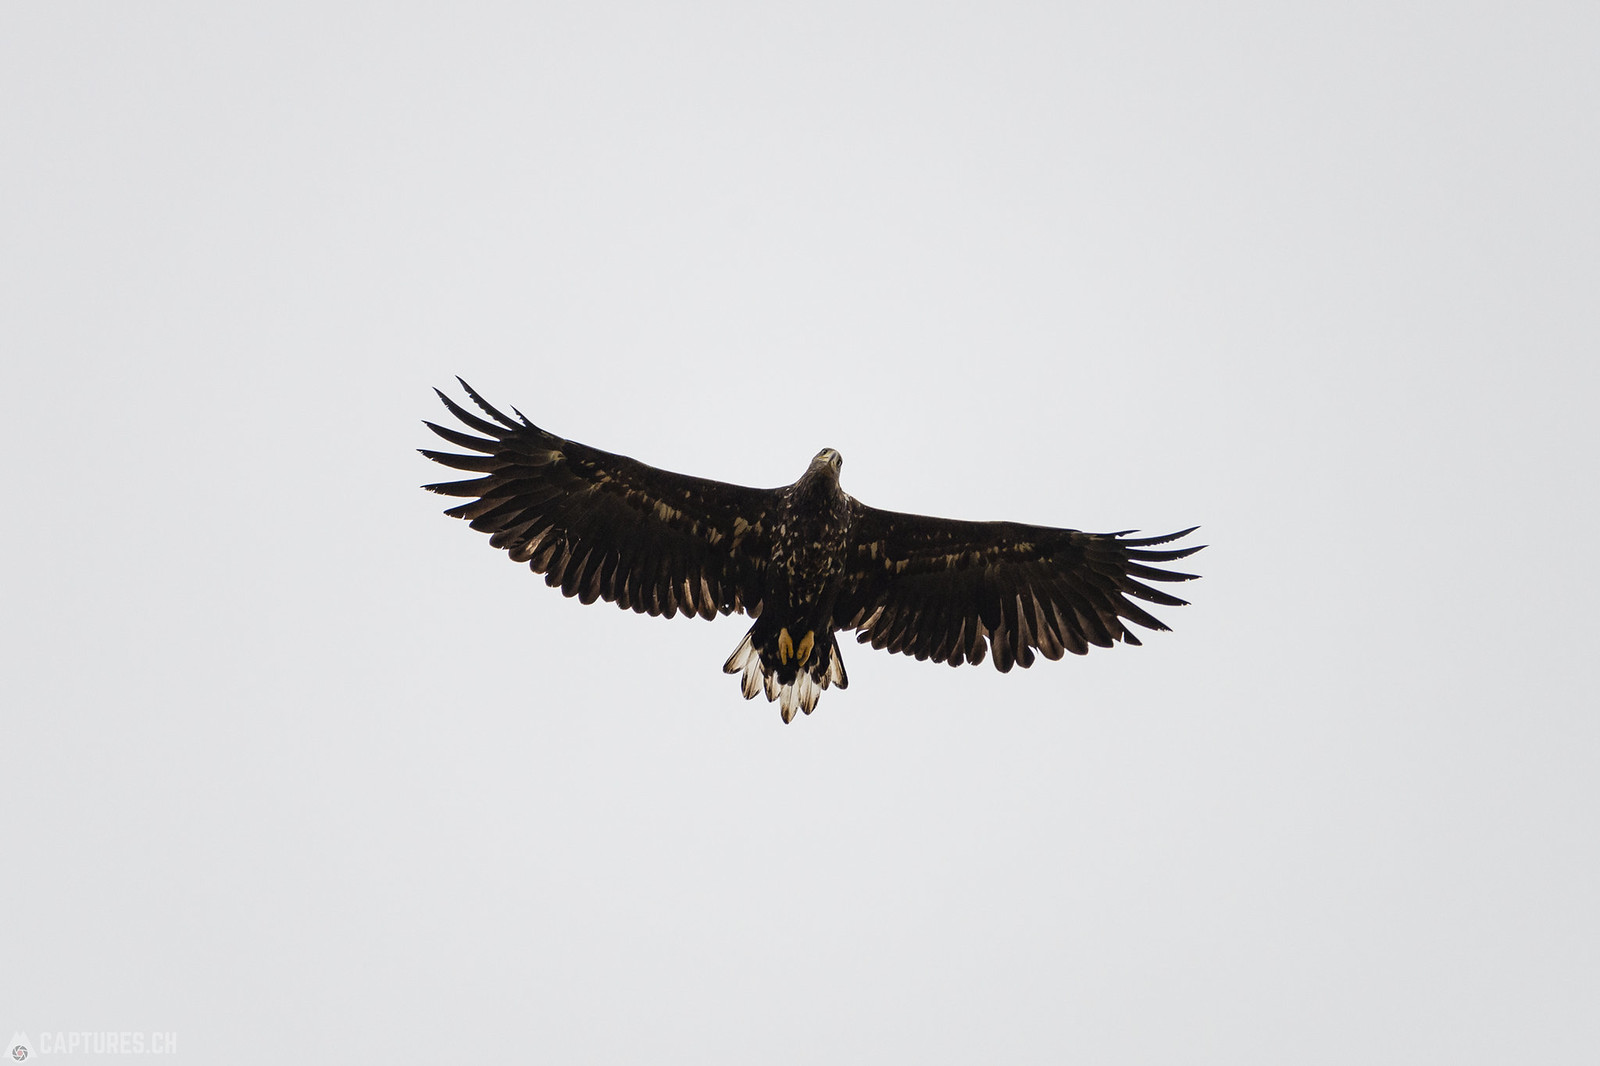 Eagle on the watch - Narsarsuaq